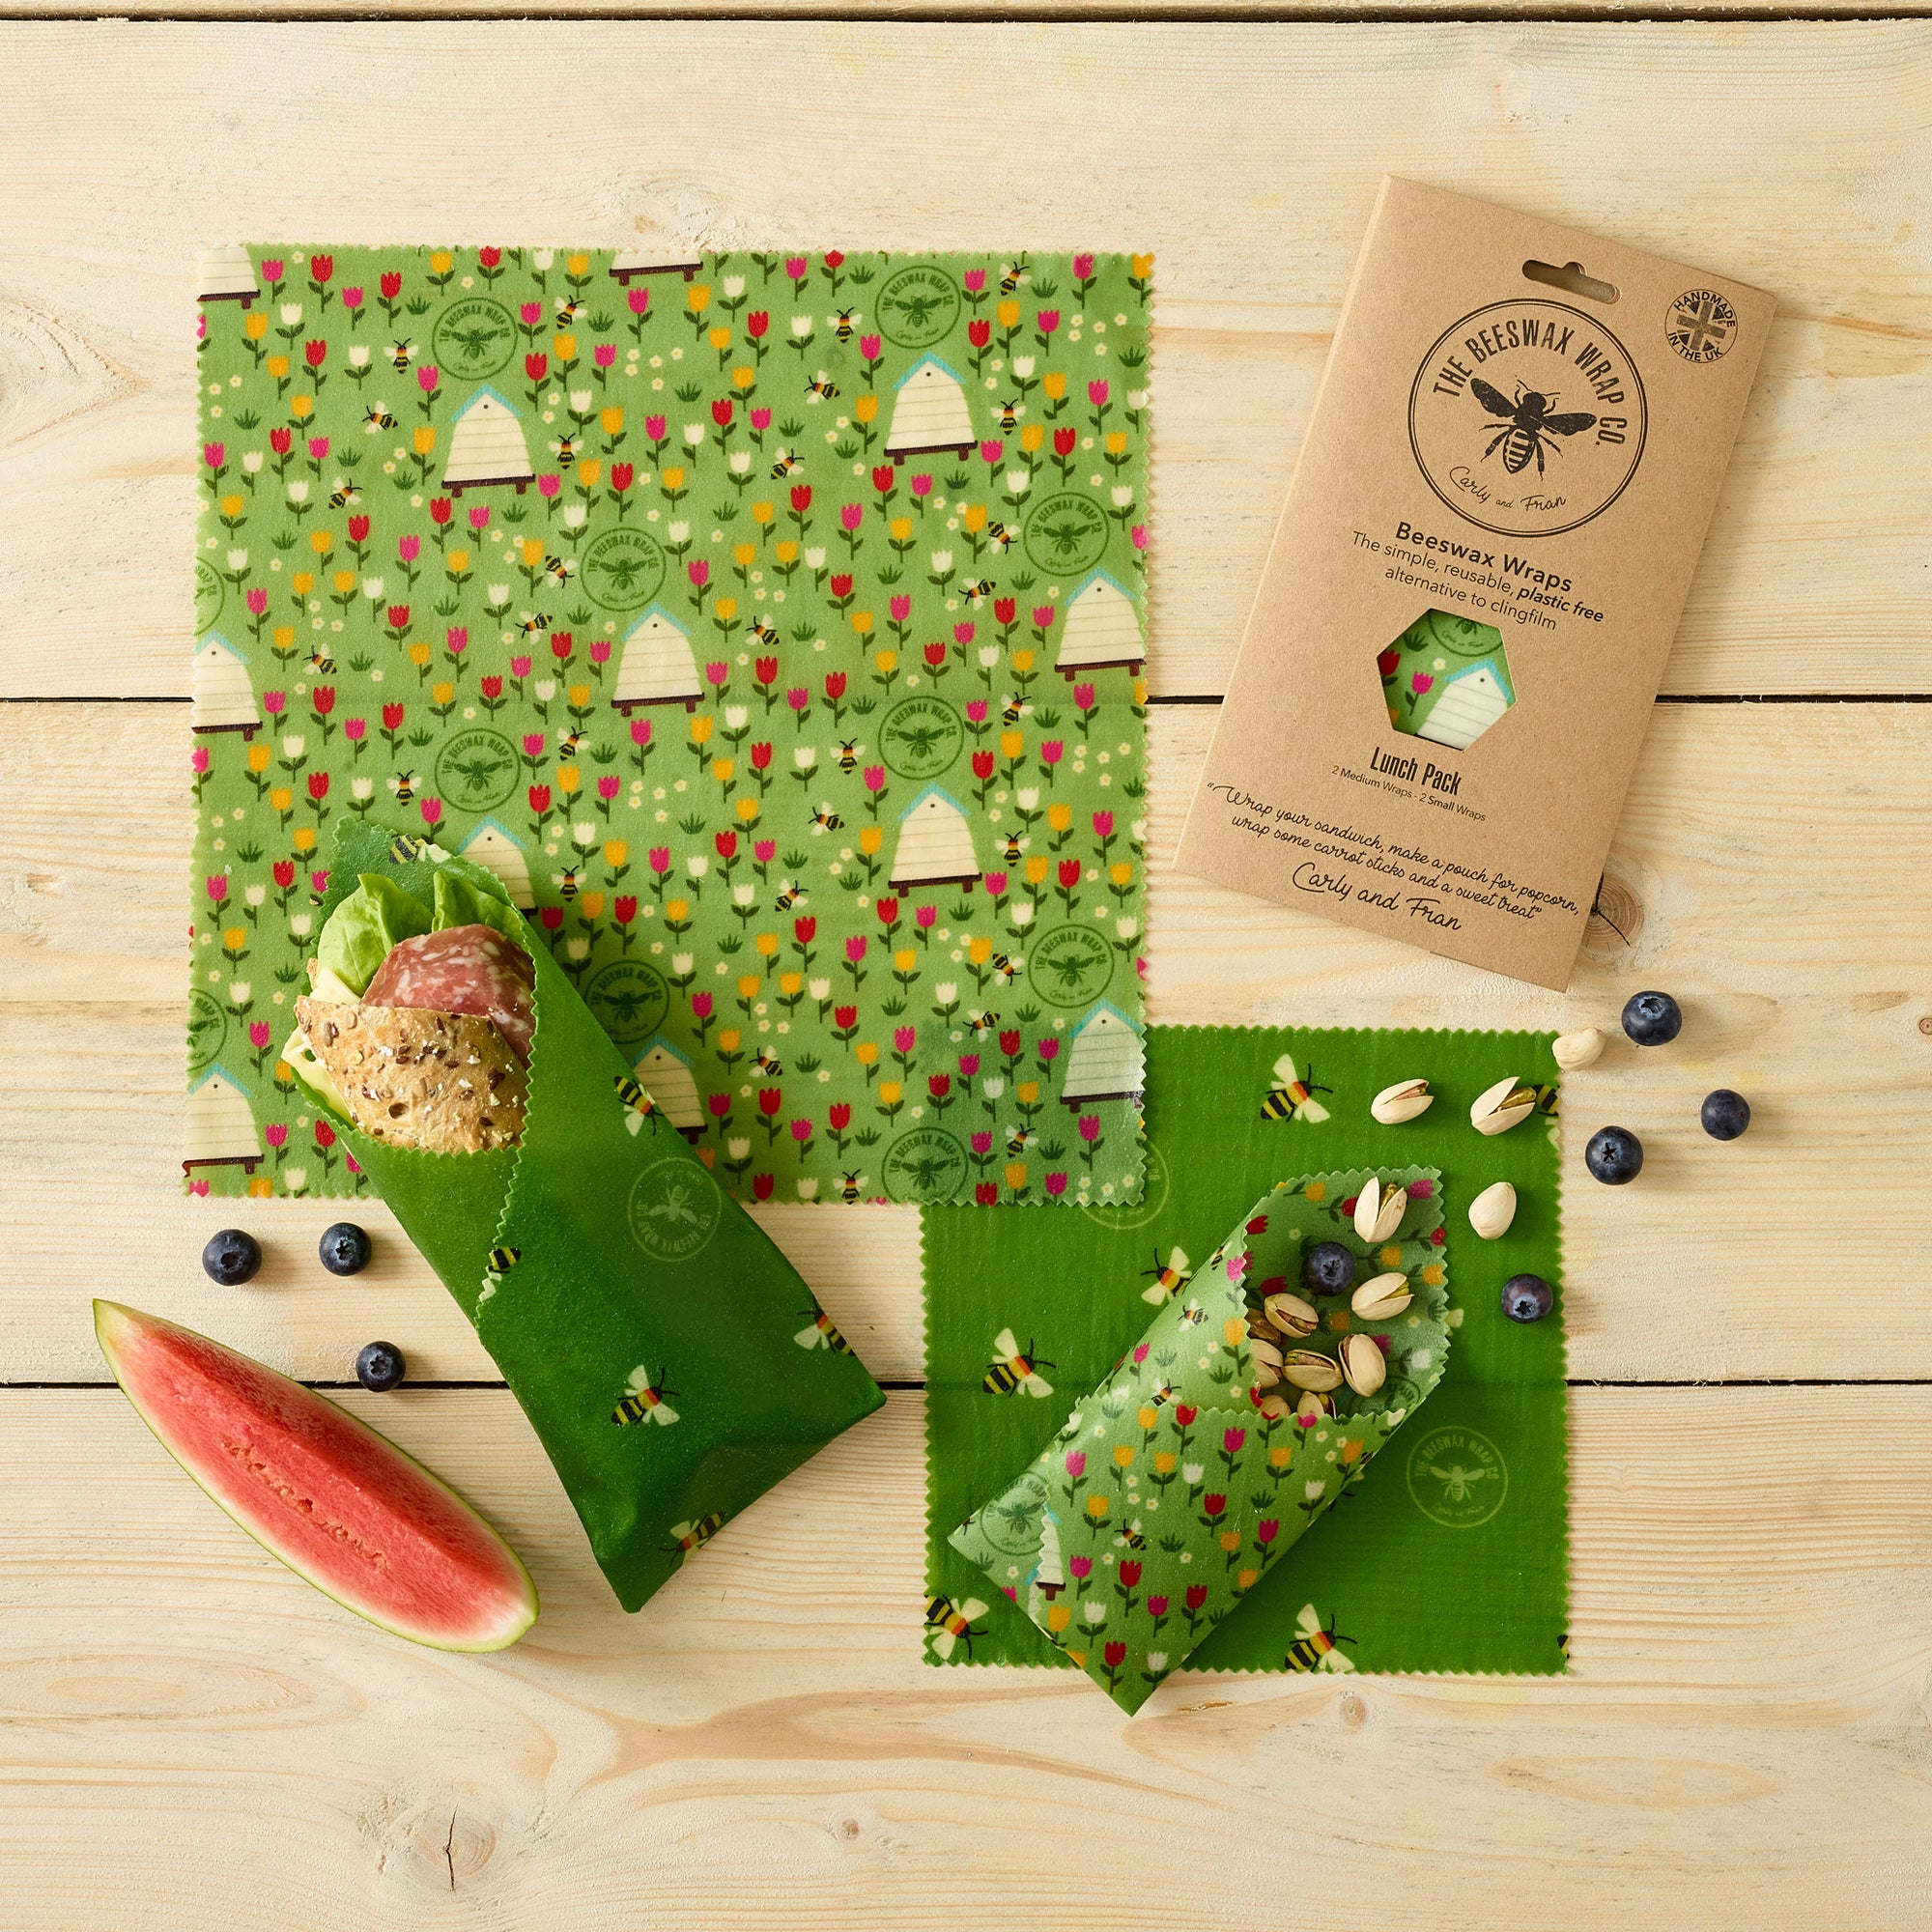 Beeswax Food Wrap - Lunch Pack - Meadow Design | Food Wrap - The Naughty Shrew